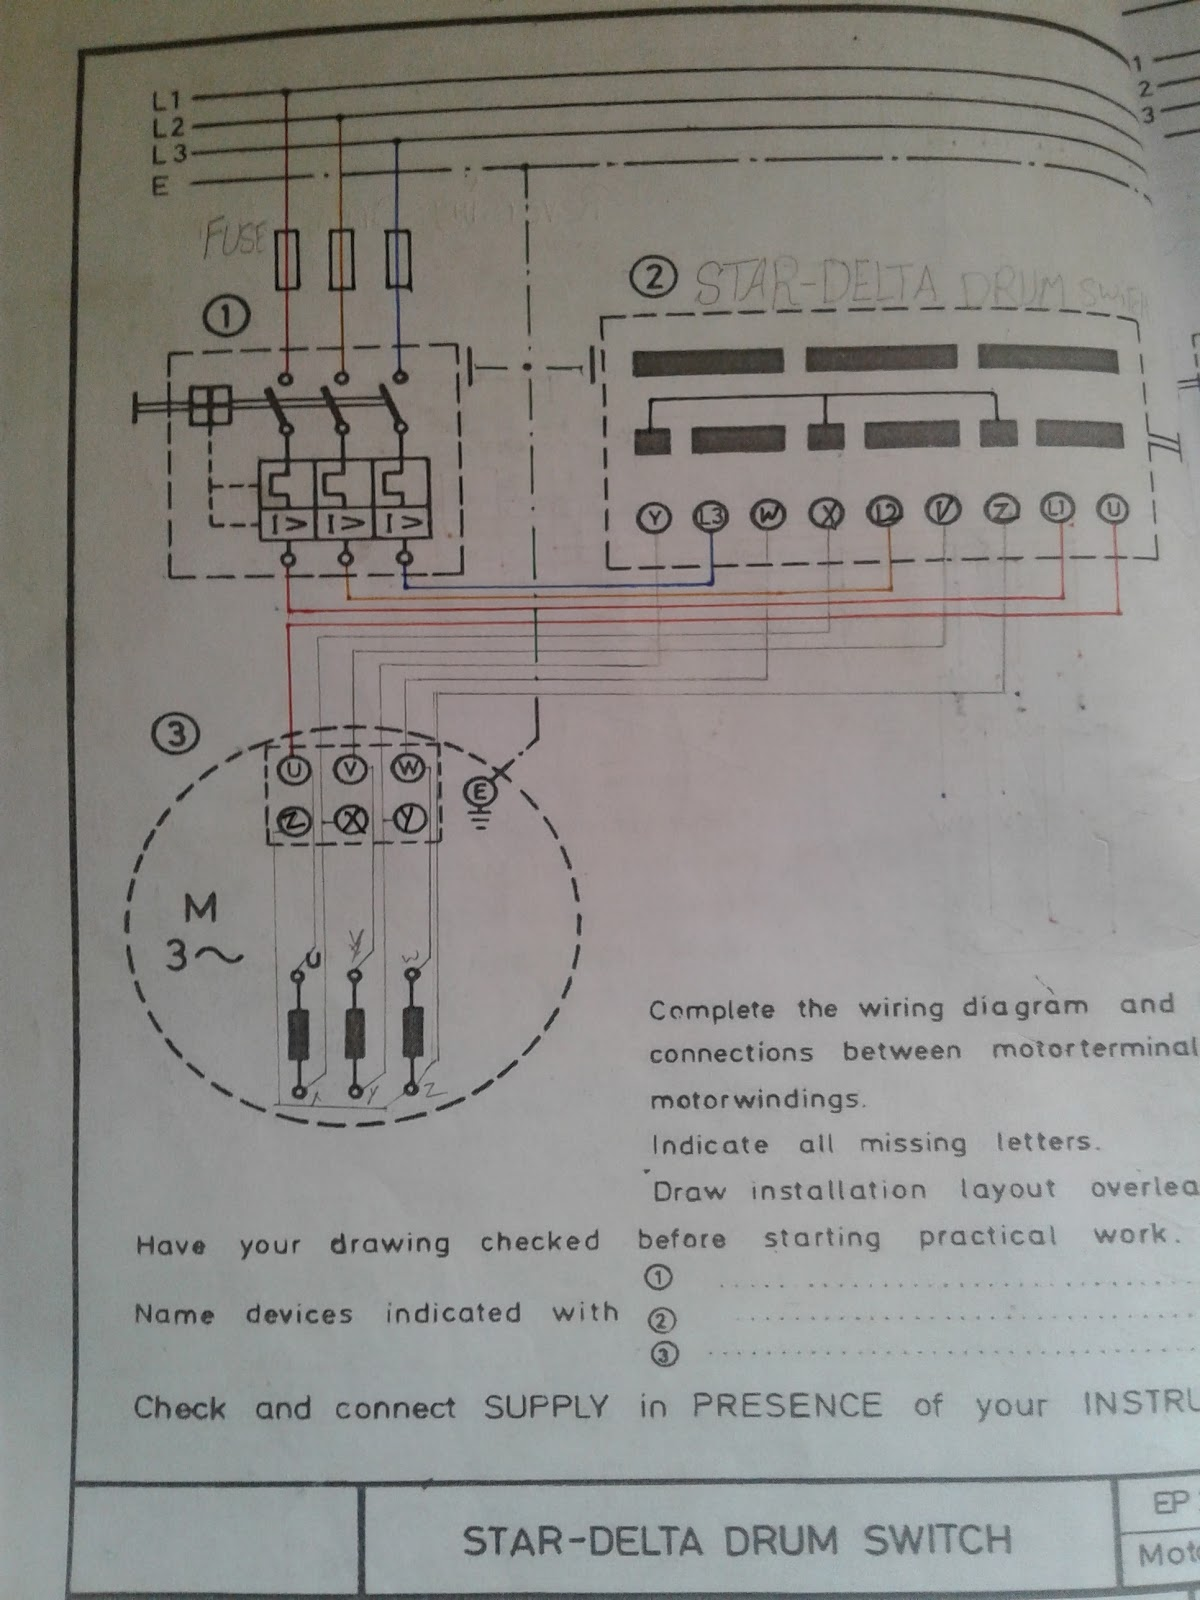 hight resolution of motor connection 3 star delta magnet contactor